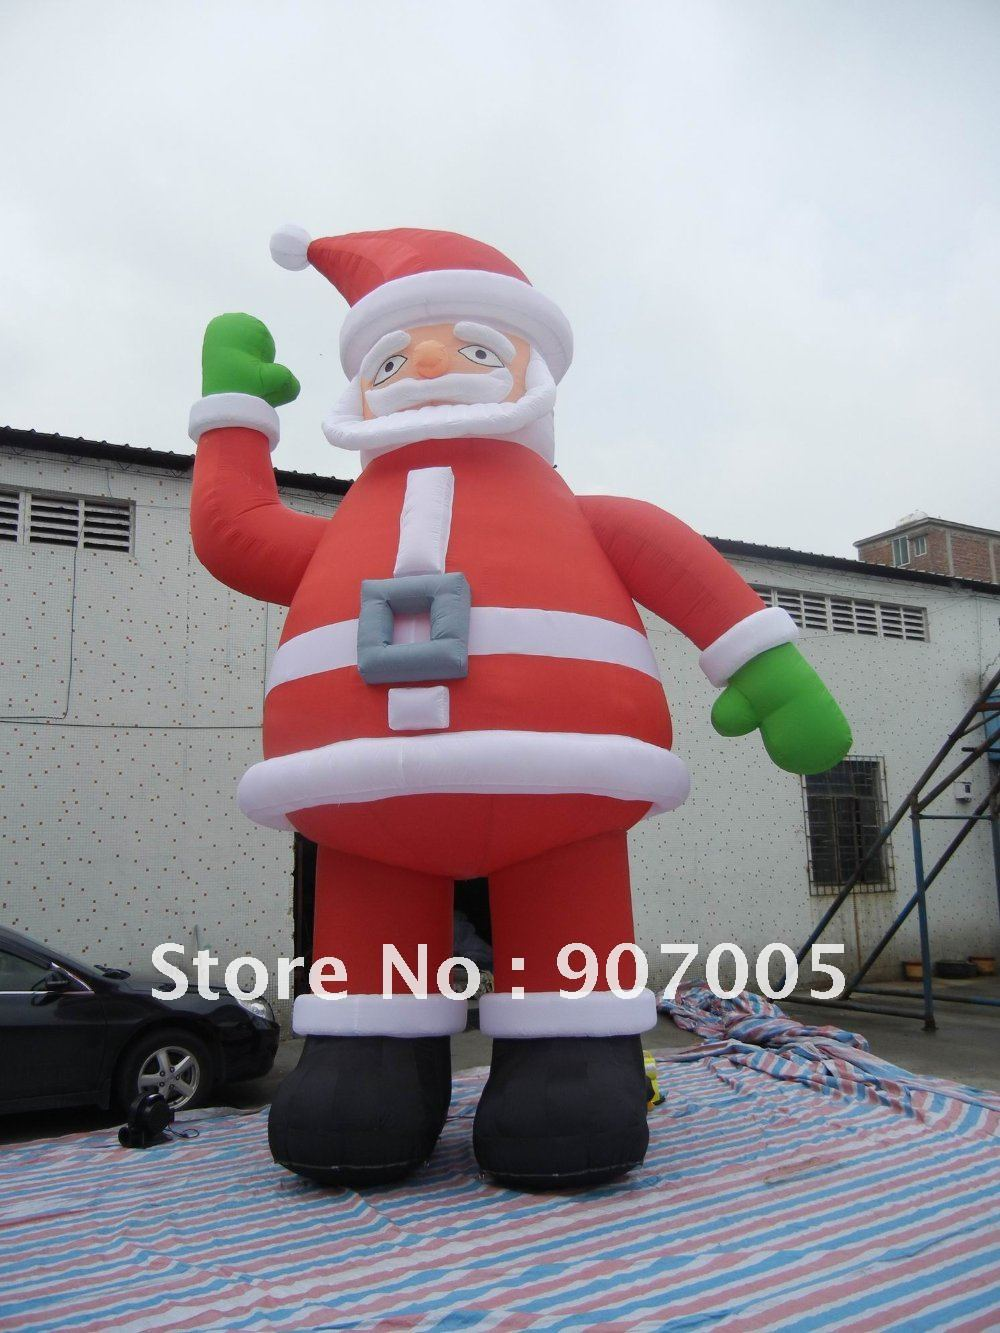 Compare Prices on Santa Claus Inflatable- Online Shopping/Buy Low ...